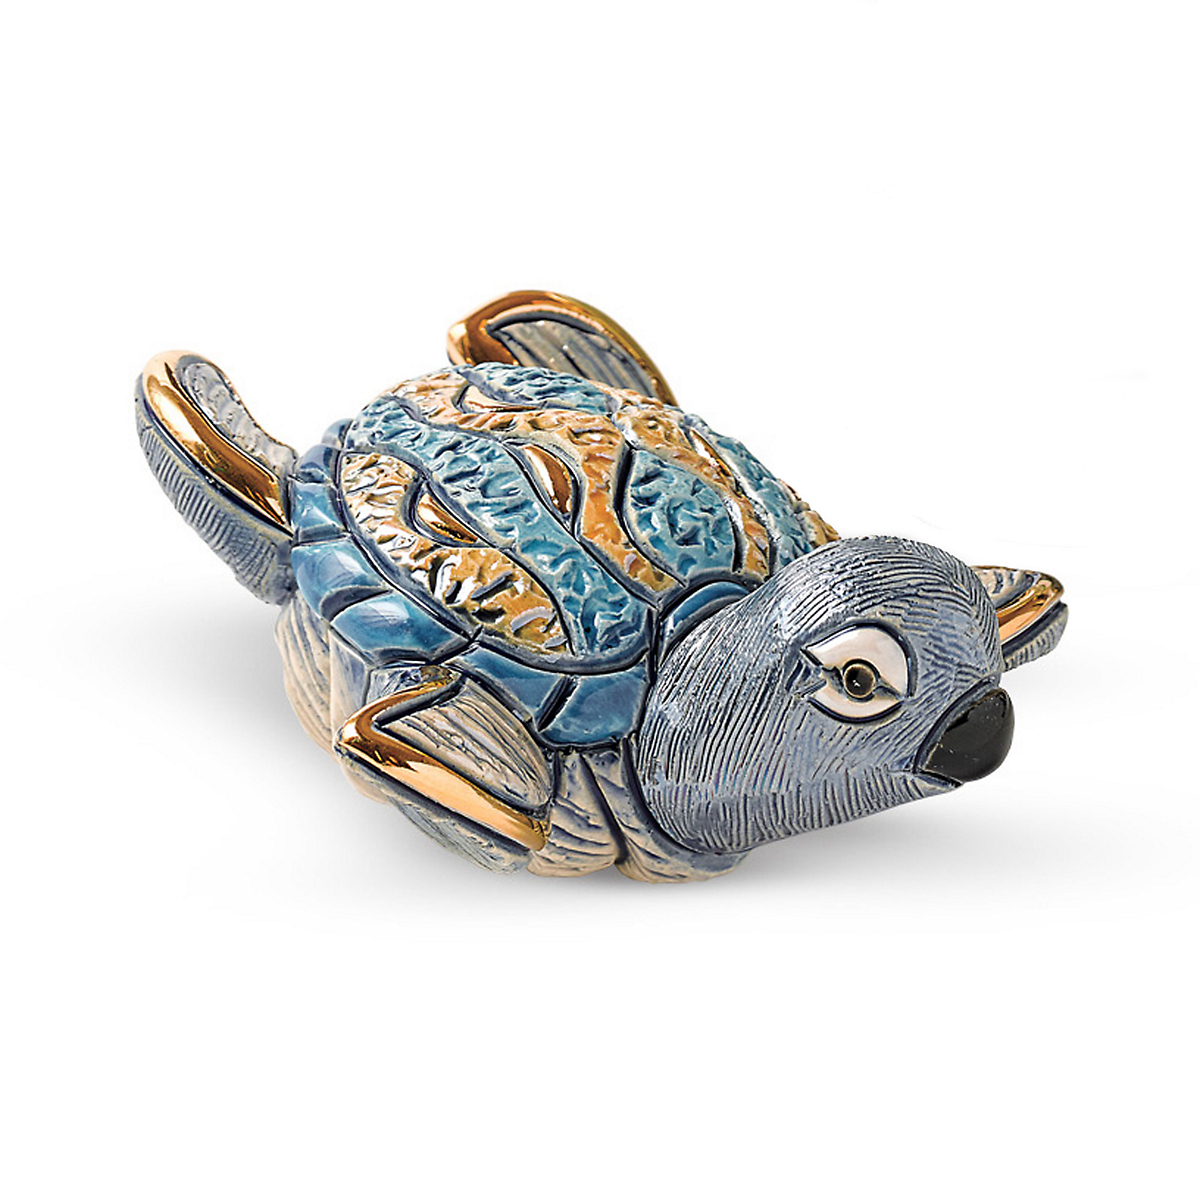 De Rosa Sea Turtle Figure